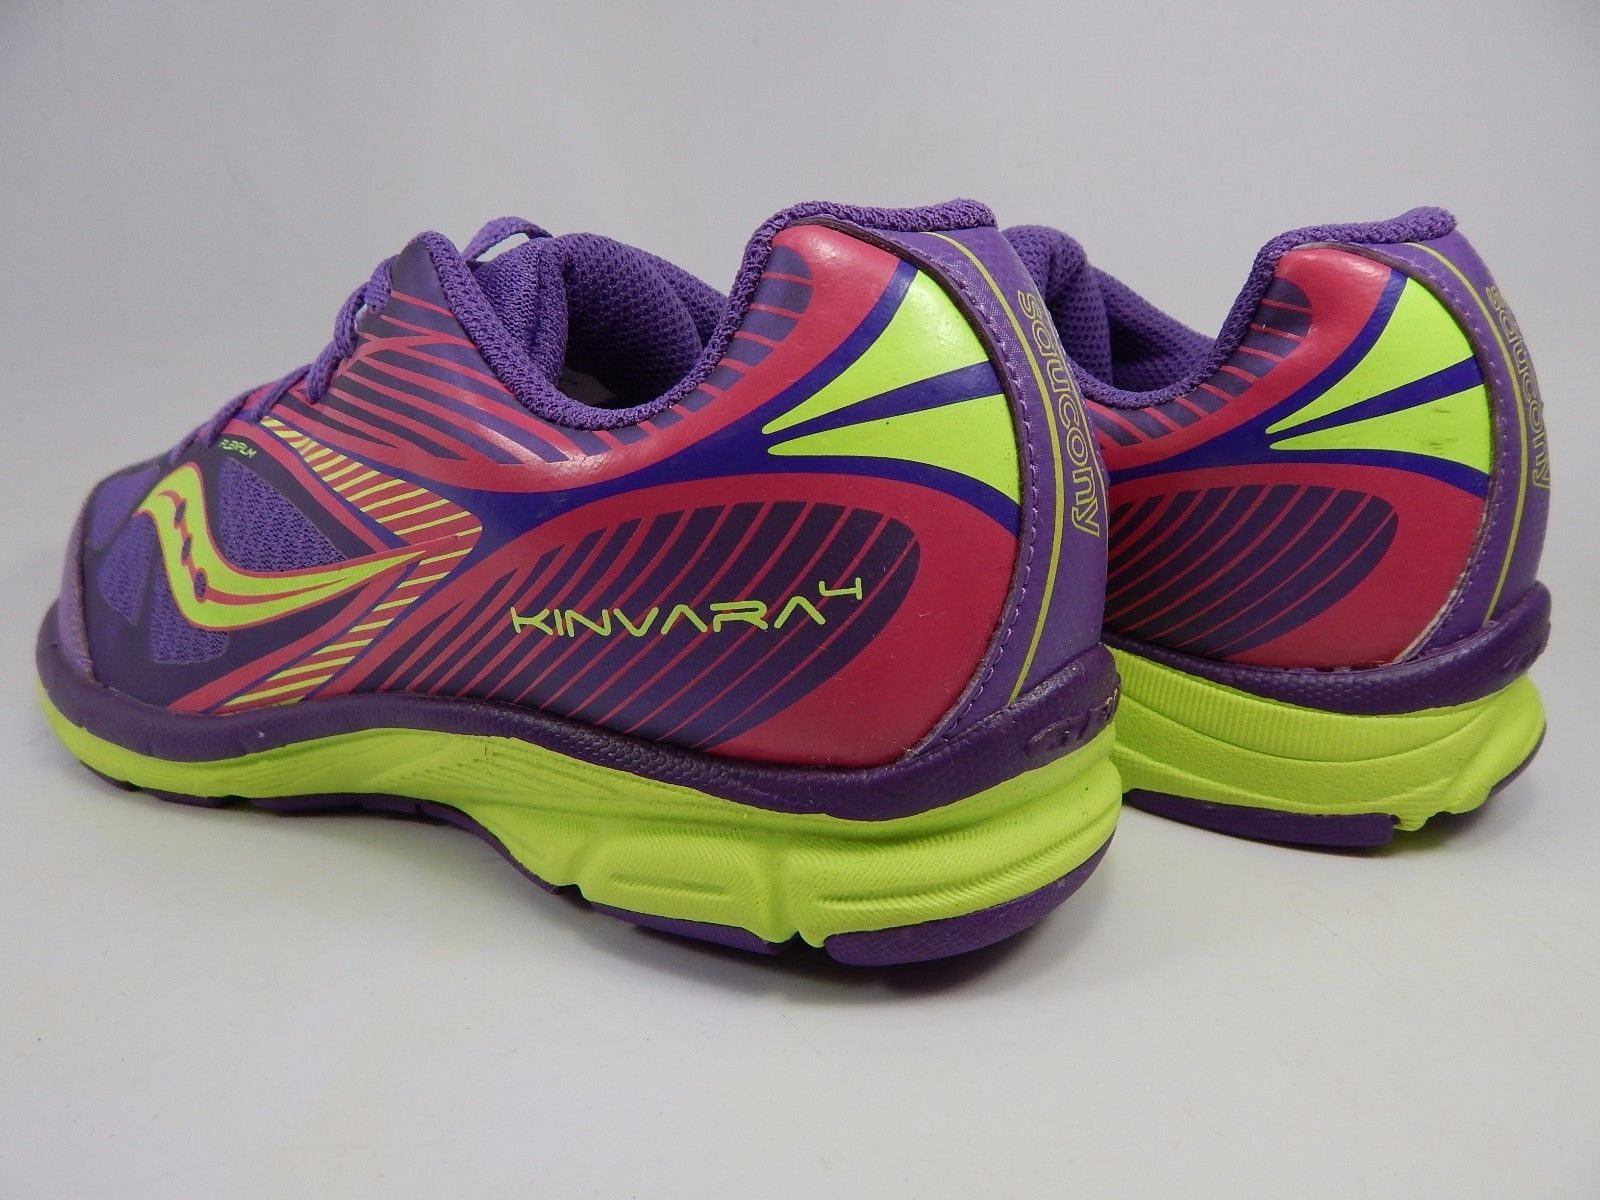 Saucony Kinvara 4 Girl's Youth Shoes Size US 6.5 B (6.5 Y) EU 39 Purple 80300-2